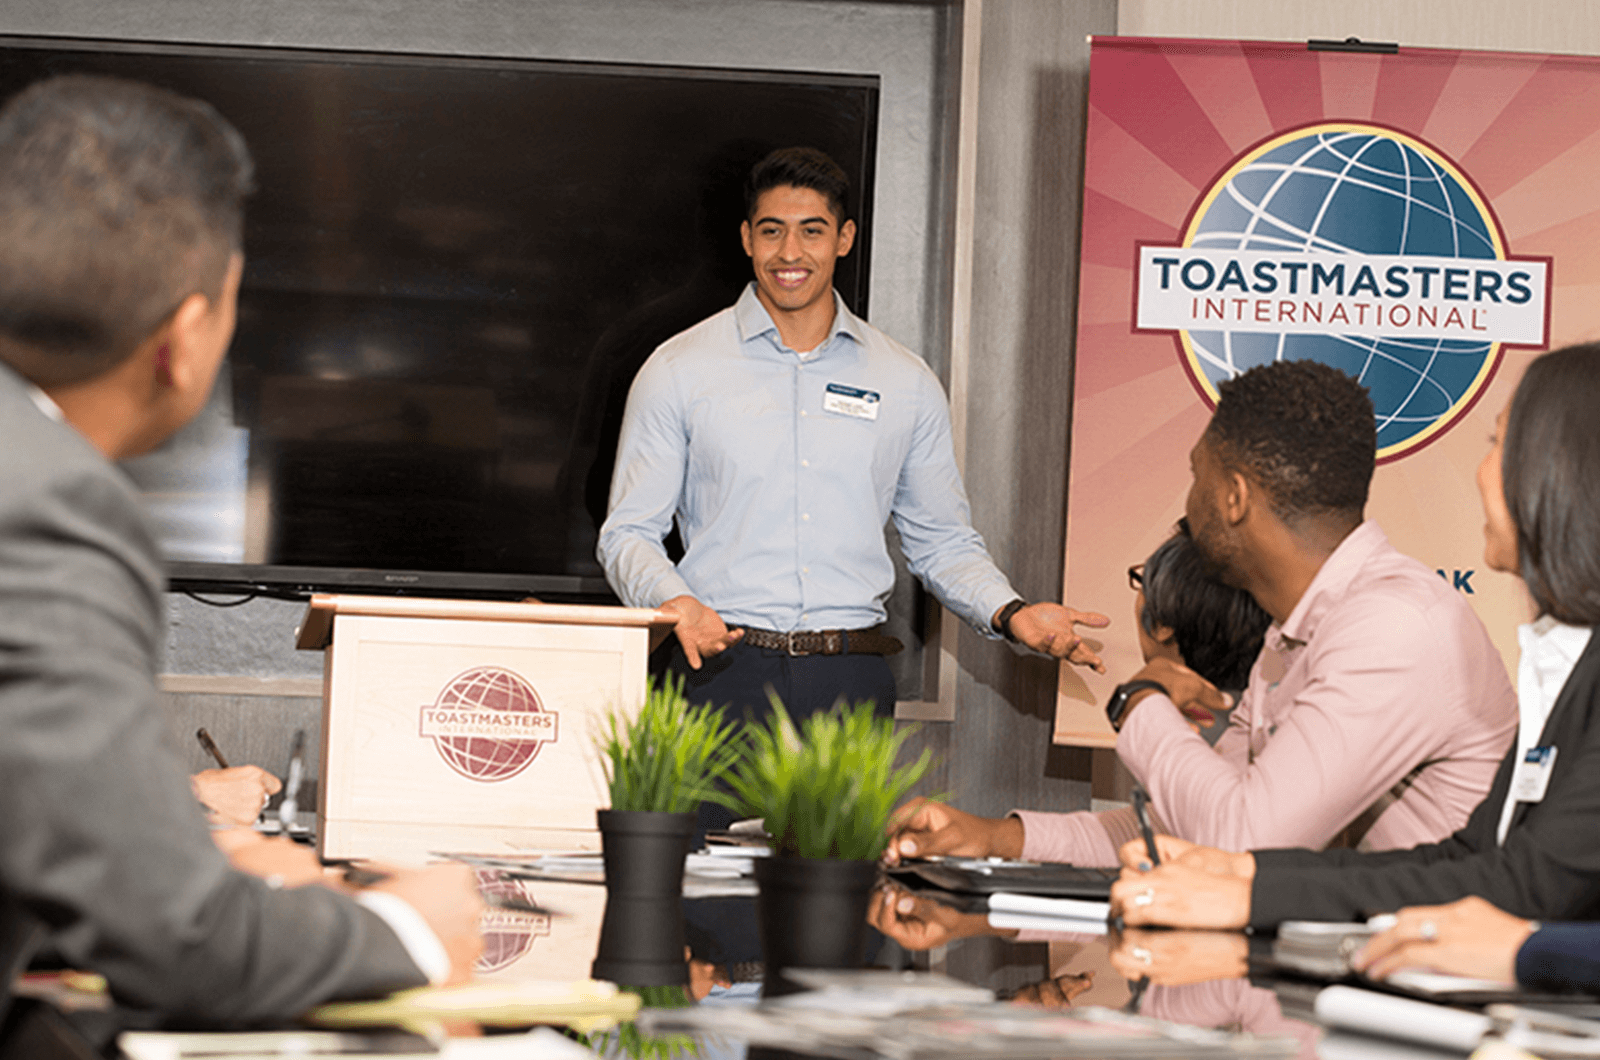 Man standing at lectern speaking at Toastmasters meeting